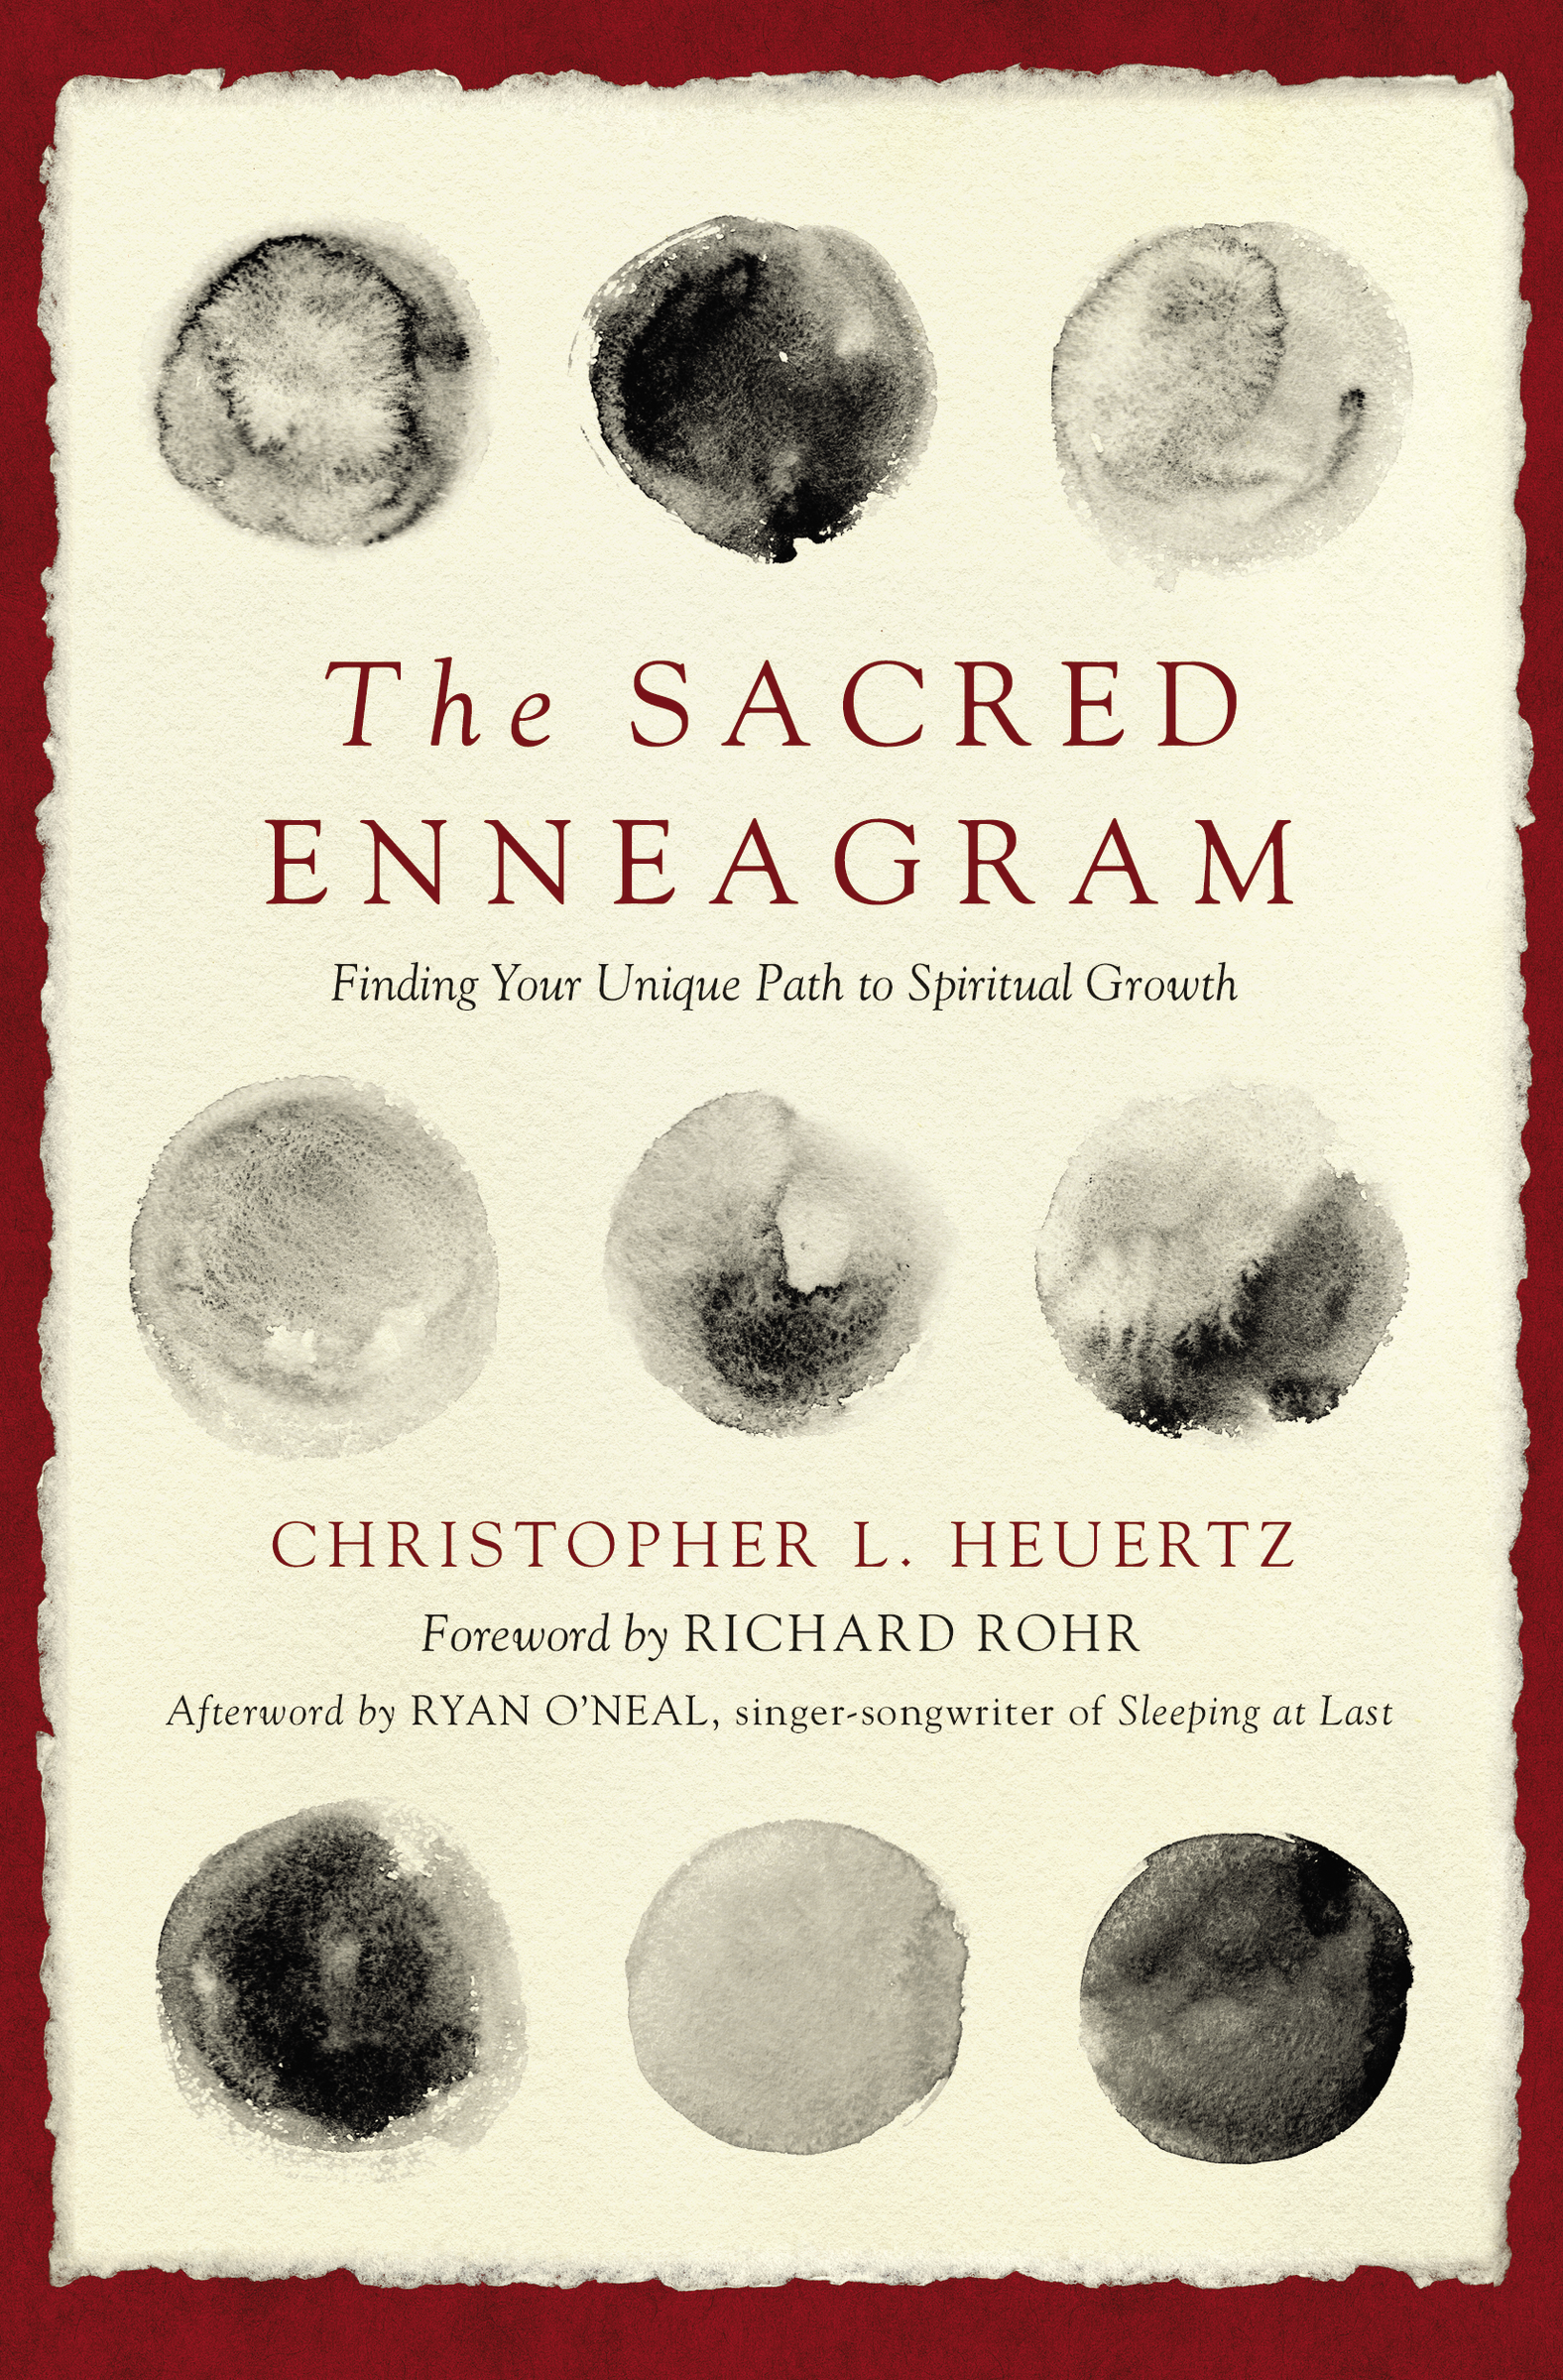 The Sacred Enneagram Finding Your Unique Path to Spiritual Growth